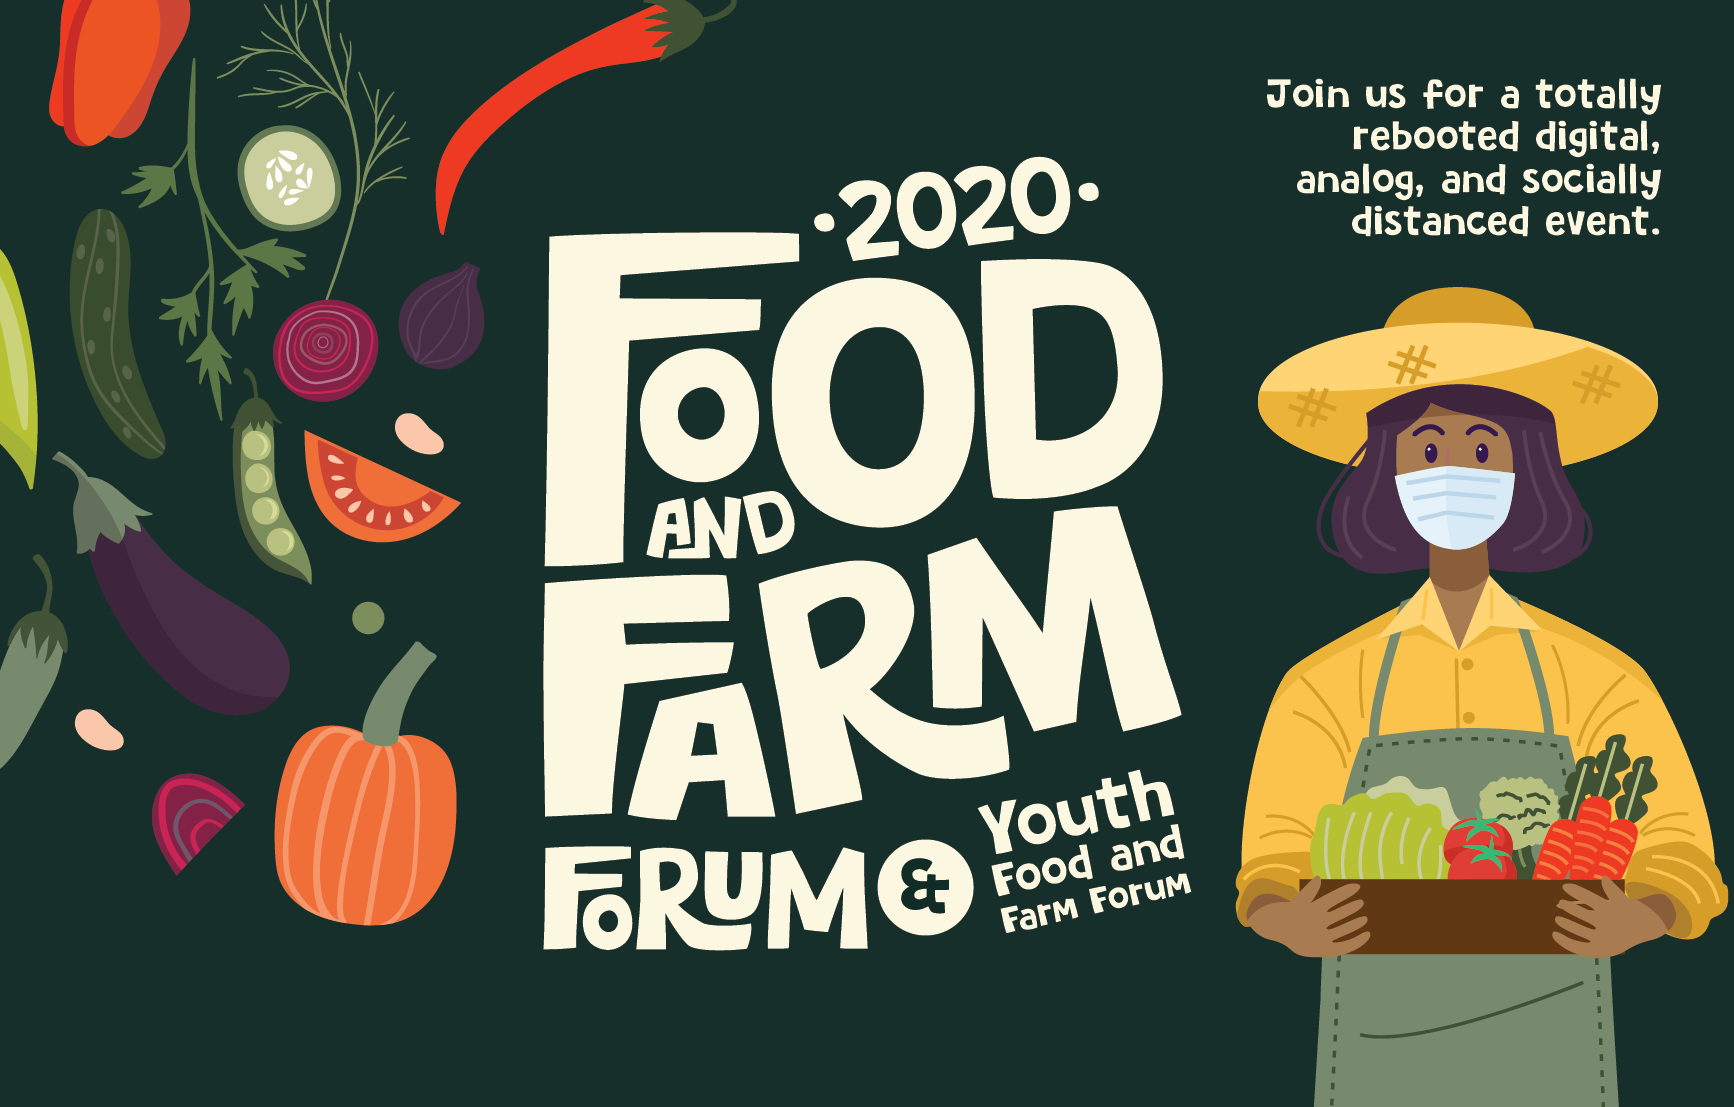 2020 Adapted Food & Farm Forum / Youth Food & Farm Forum